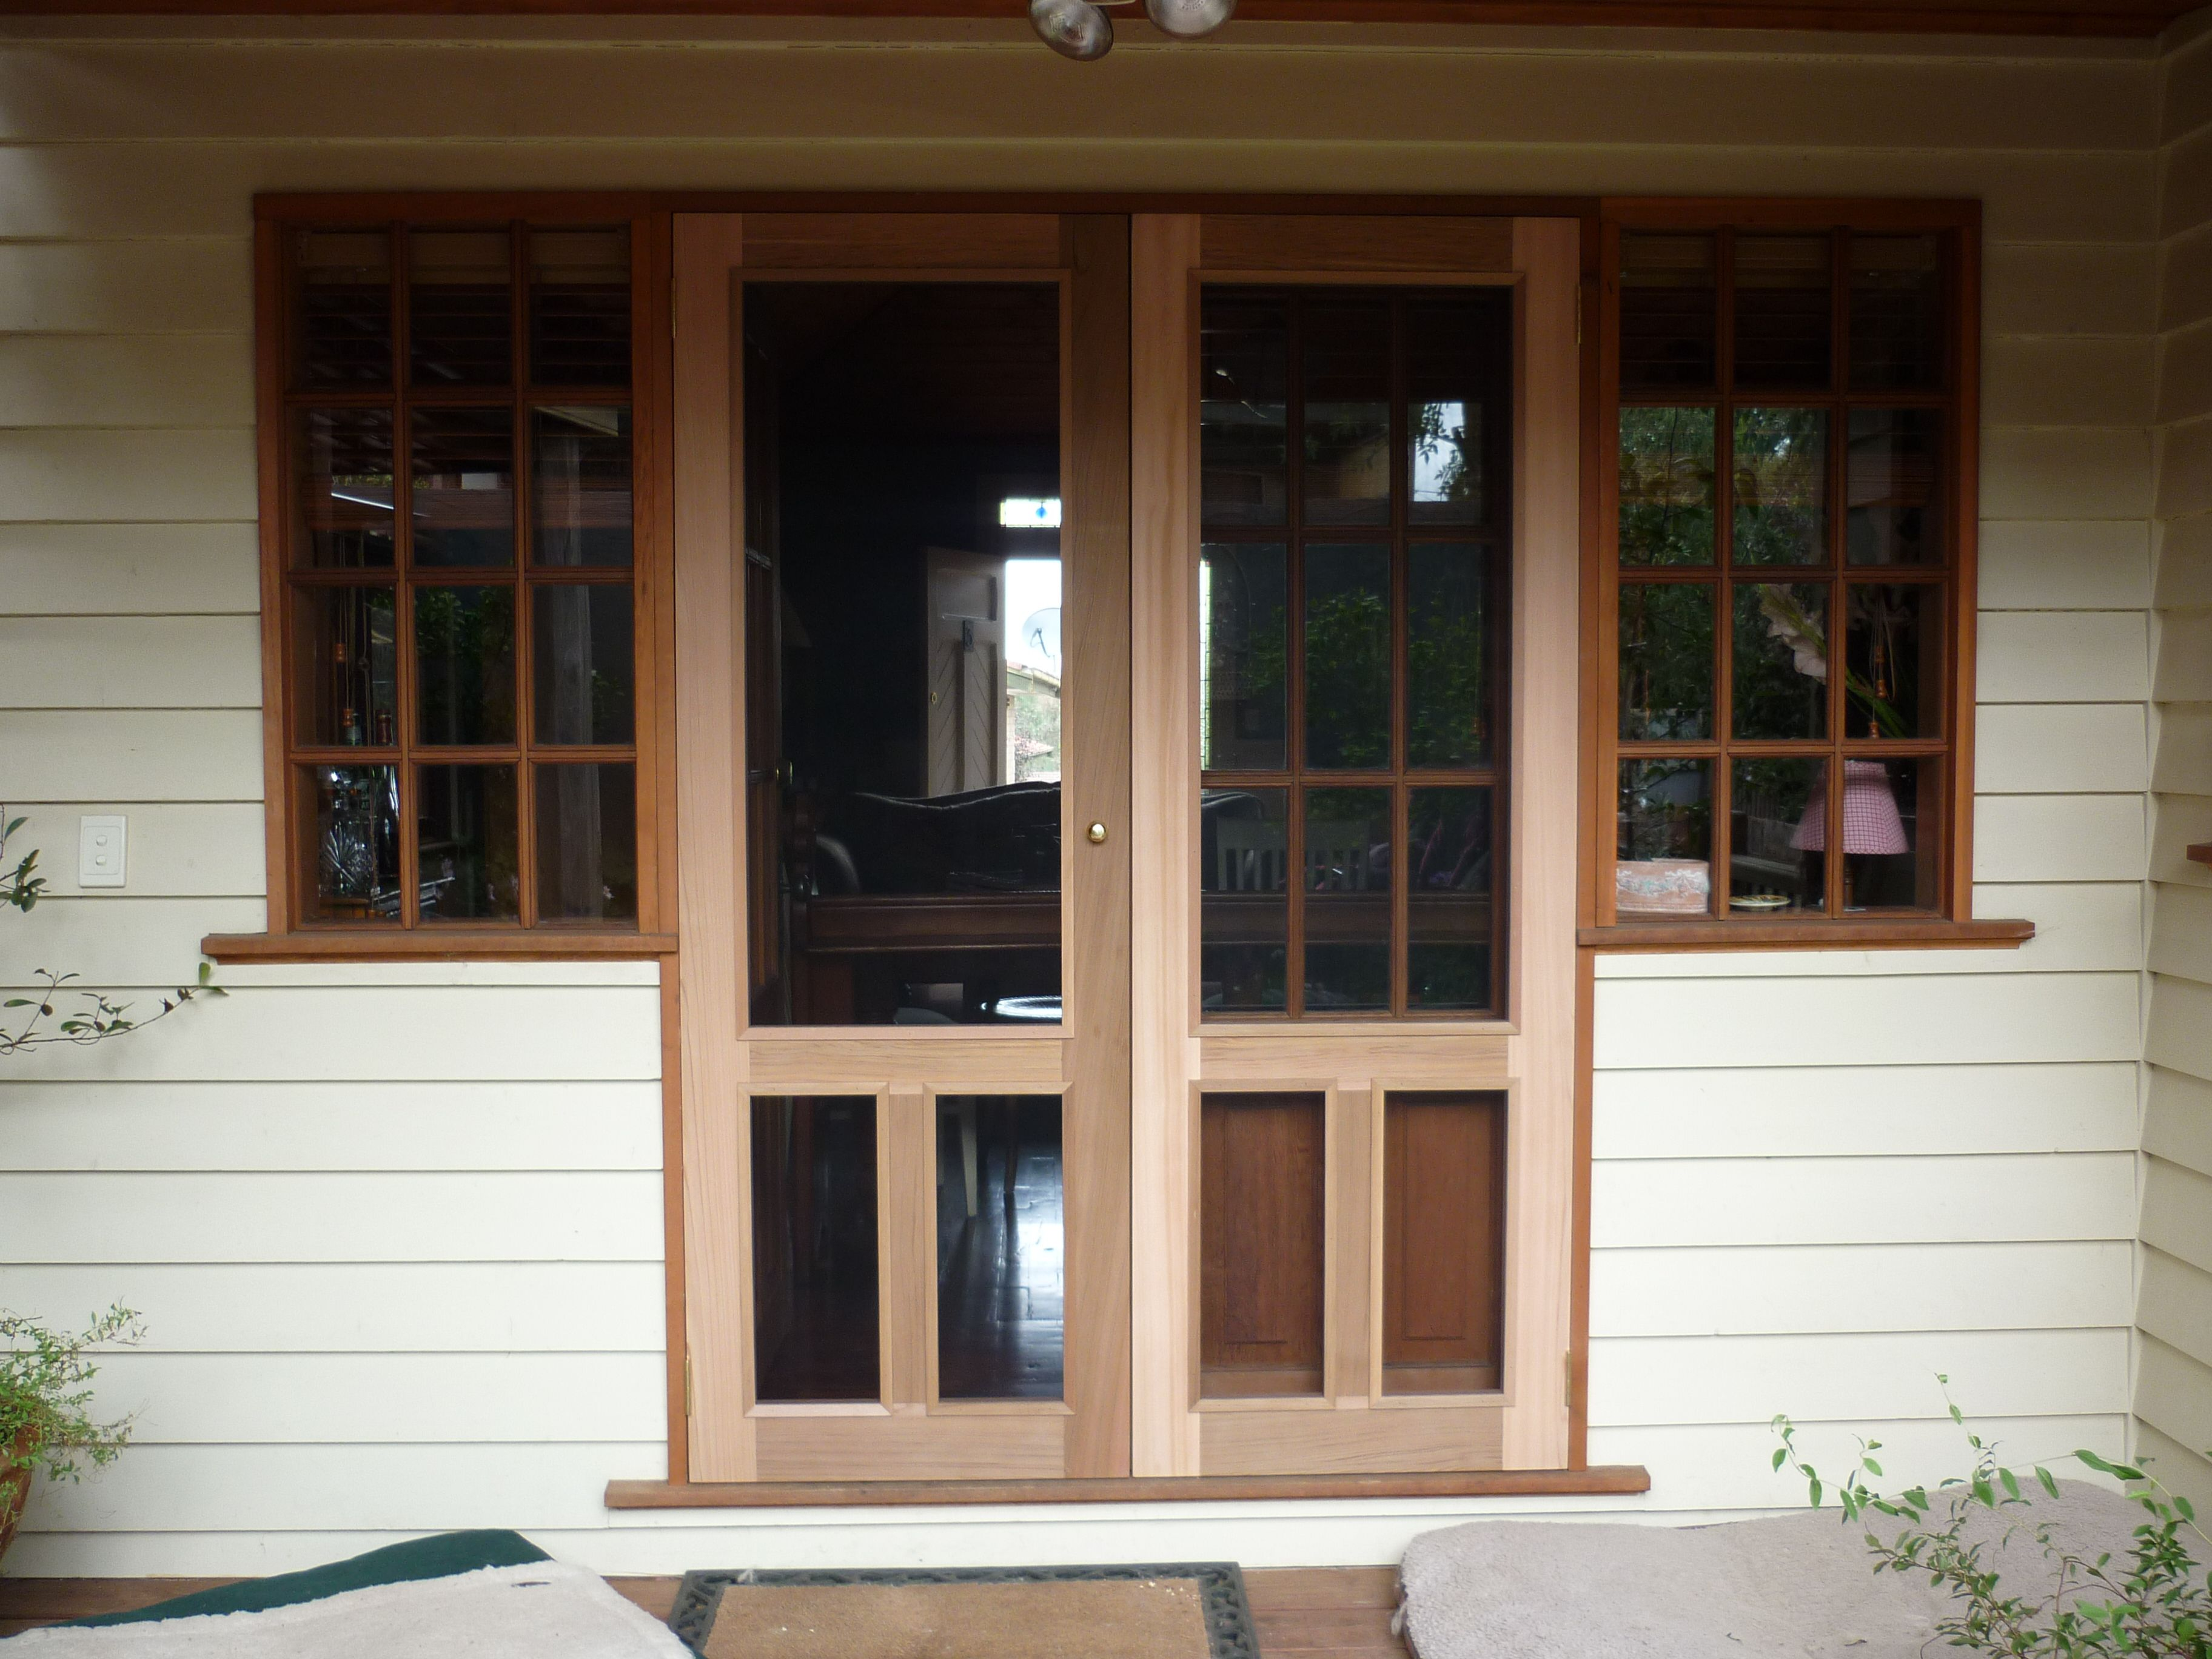 Fly Screen To Match French Doors New House Pinterest Screens